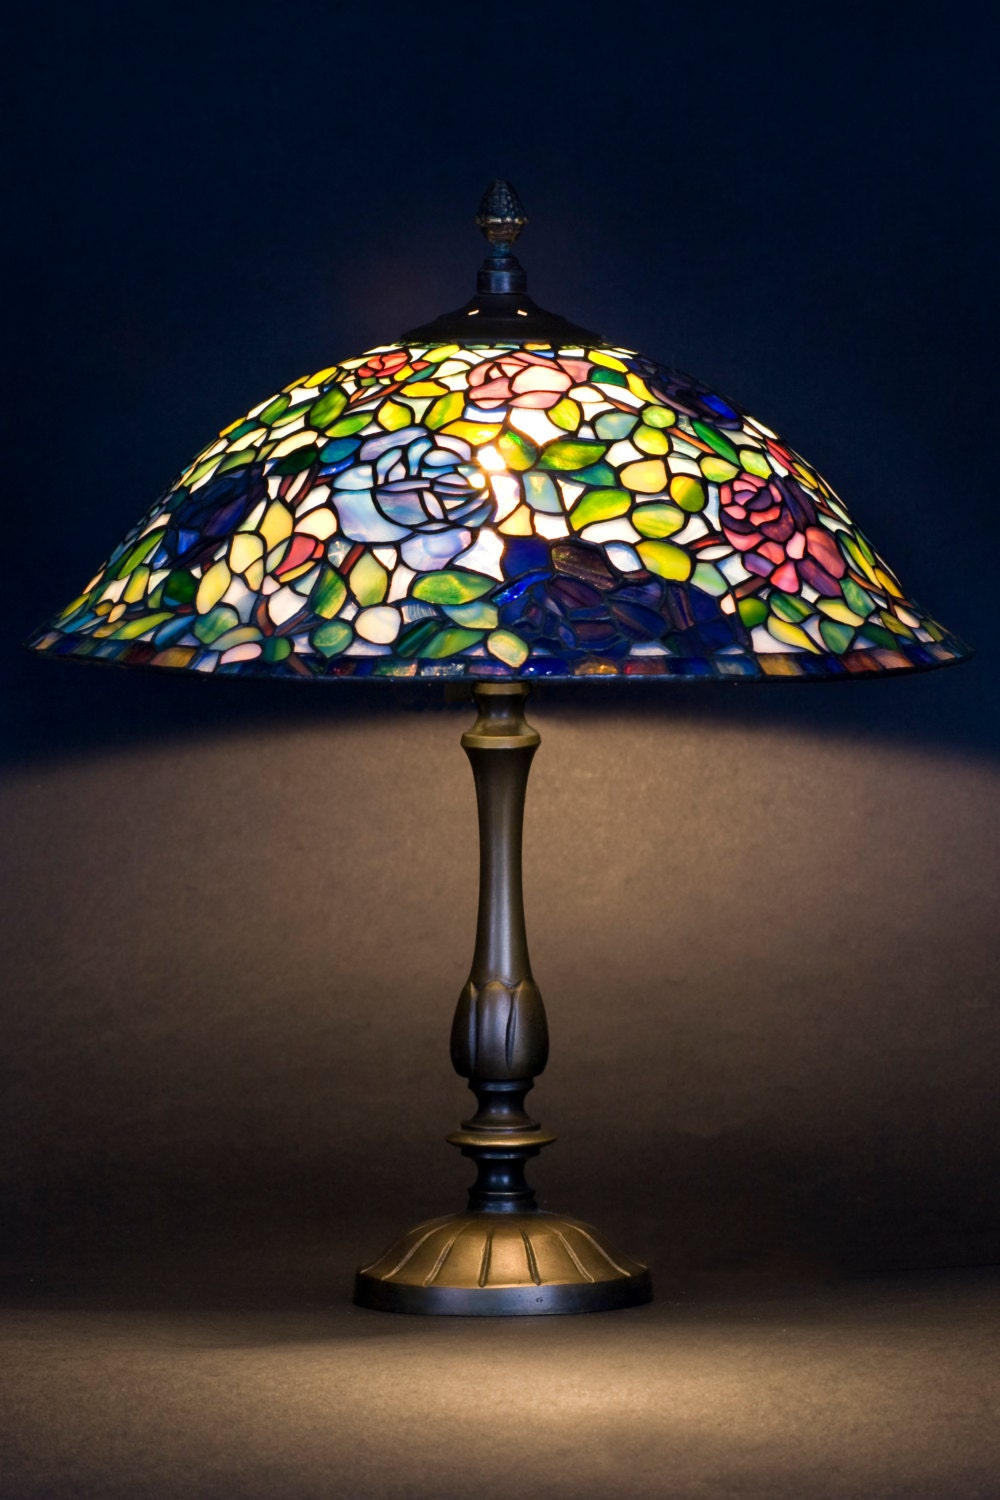 Rose Lamp Shade Stained Glass Lamp Miniature Lamp Rose Lights Tiffany Lamp Stained Glass Light Lamp Shade Home Decor